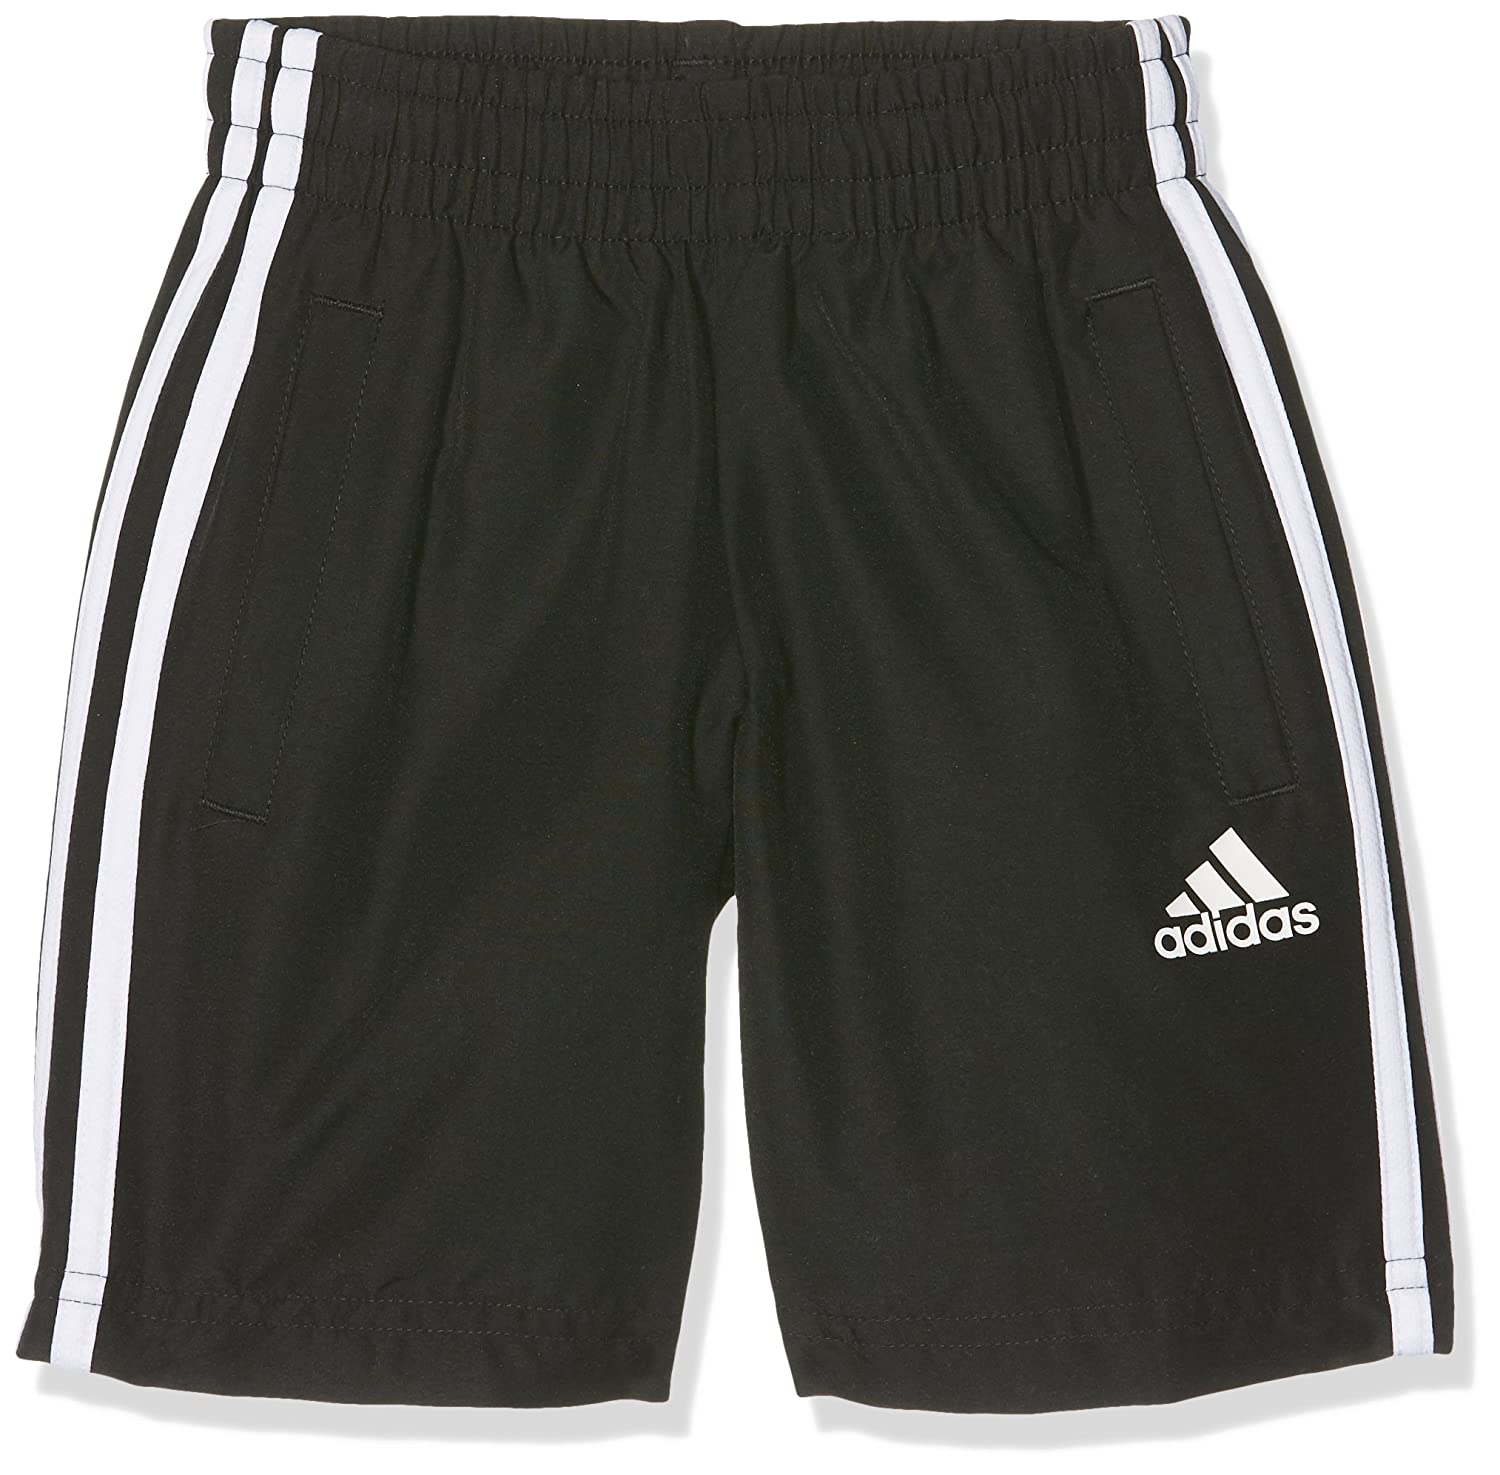 adidas Boys' Essentials 3 Stripes Woven Shorts BQ2828